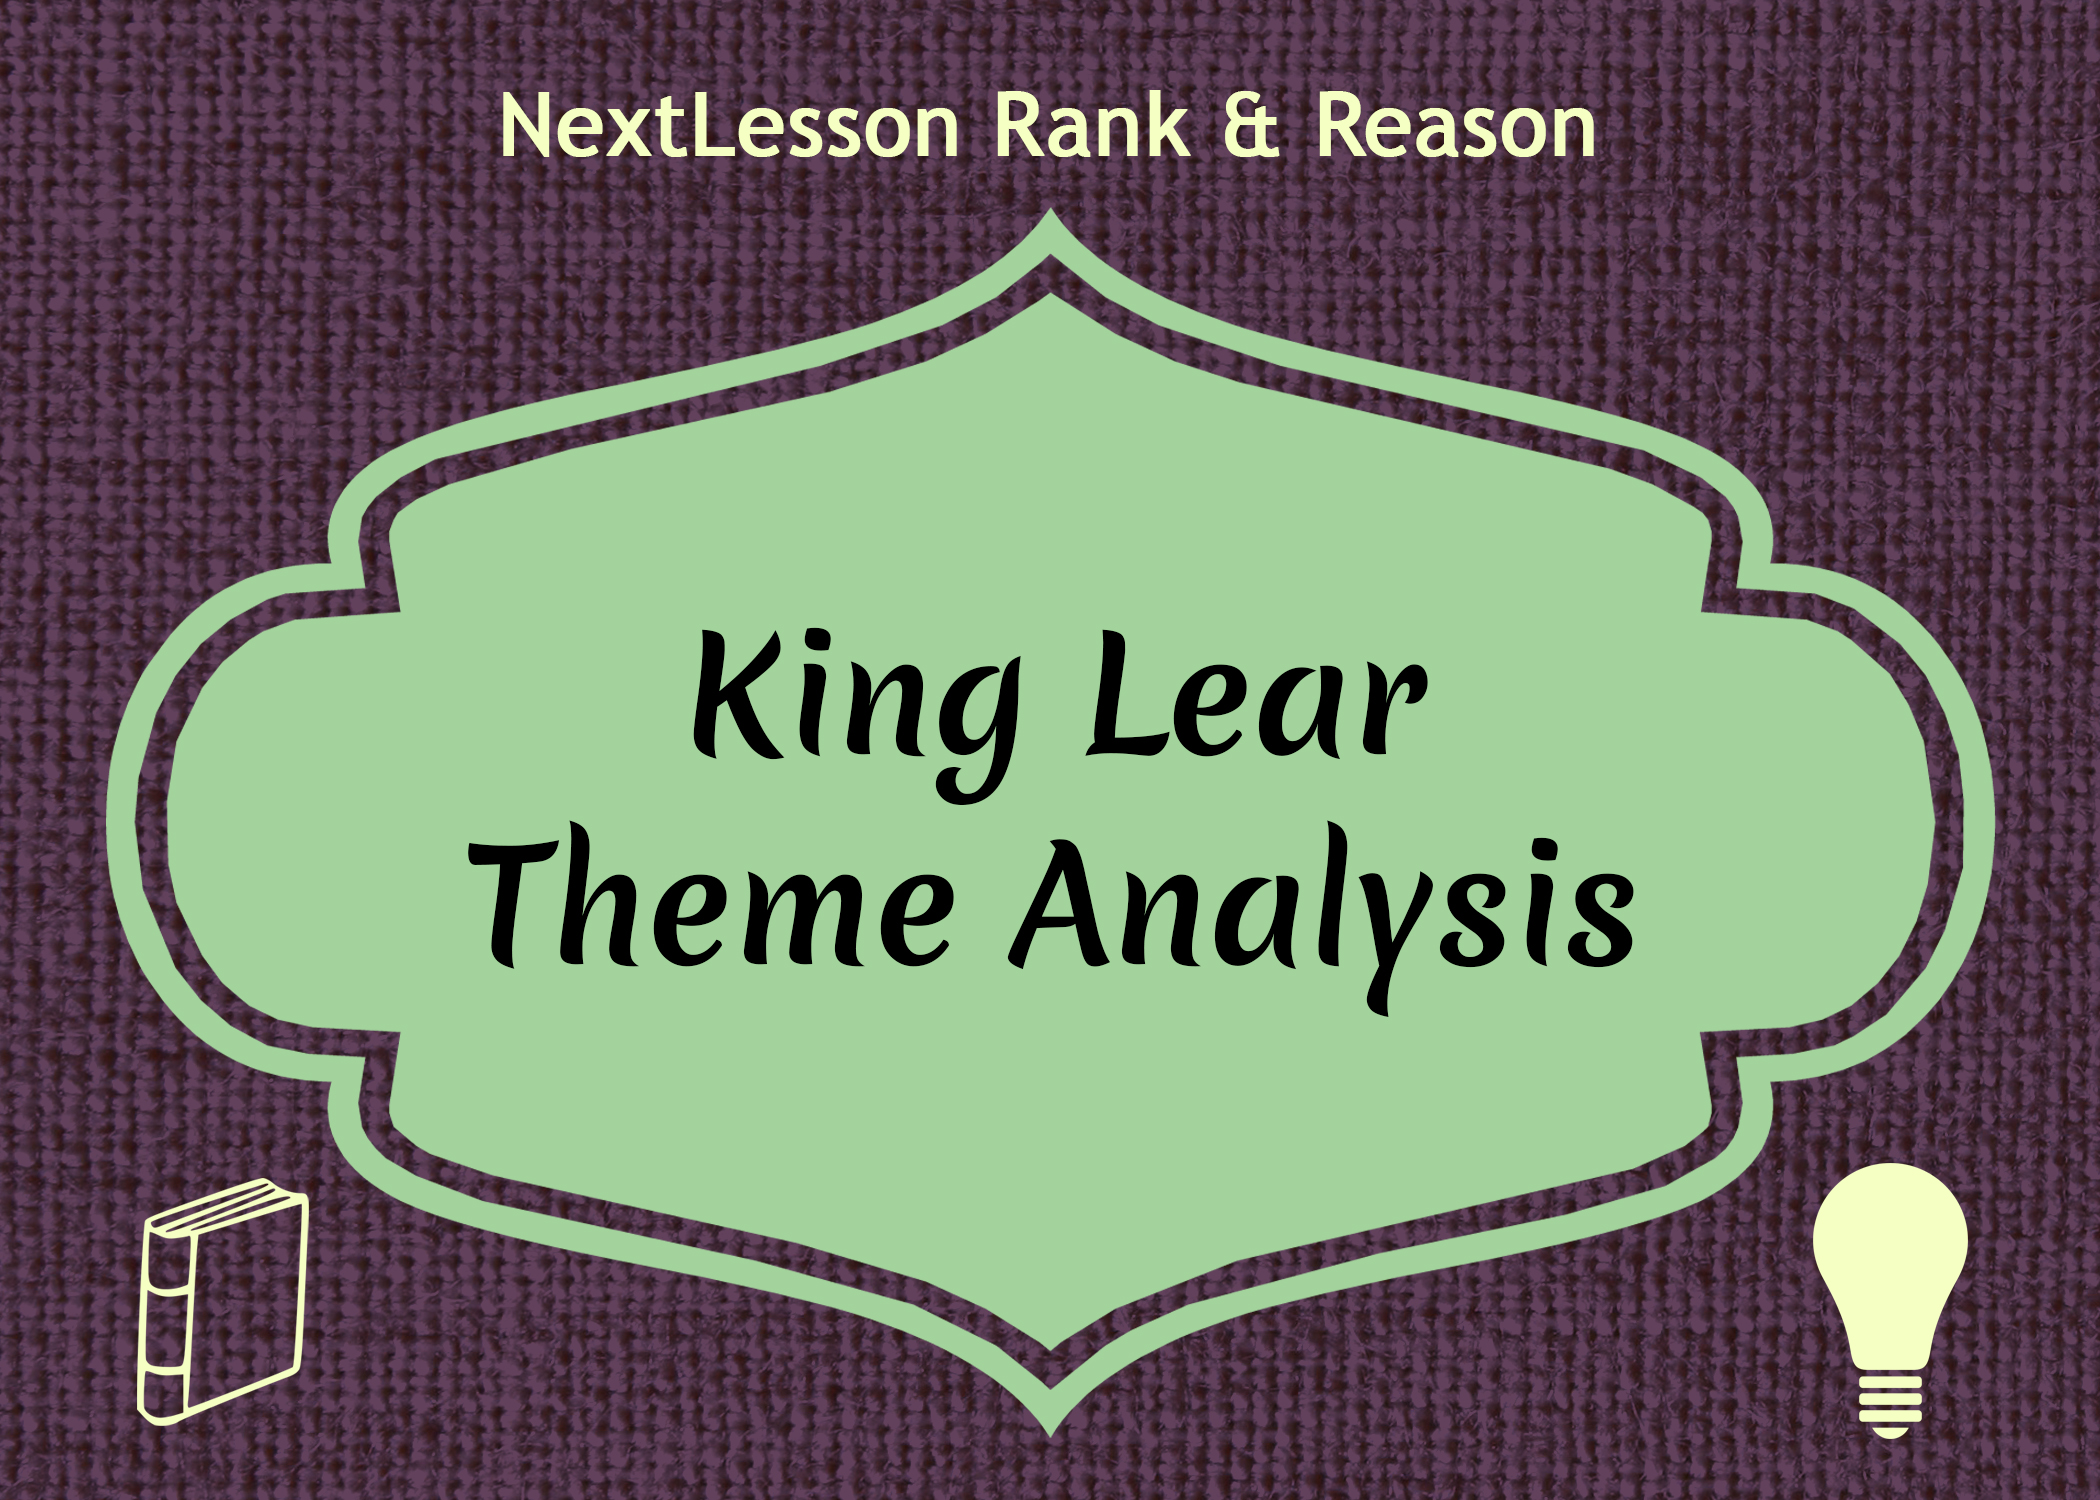 king lear lesson 6 Find king lear lesson plans and teaching resources from king lear questions worksheets to king lear outline videos, quickly find teacher-reviewed educational resources.